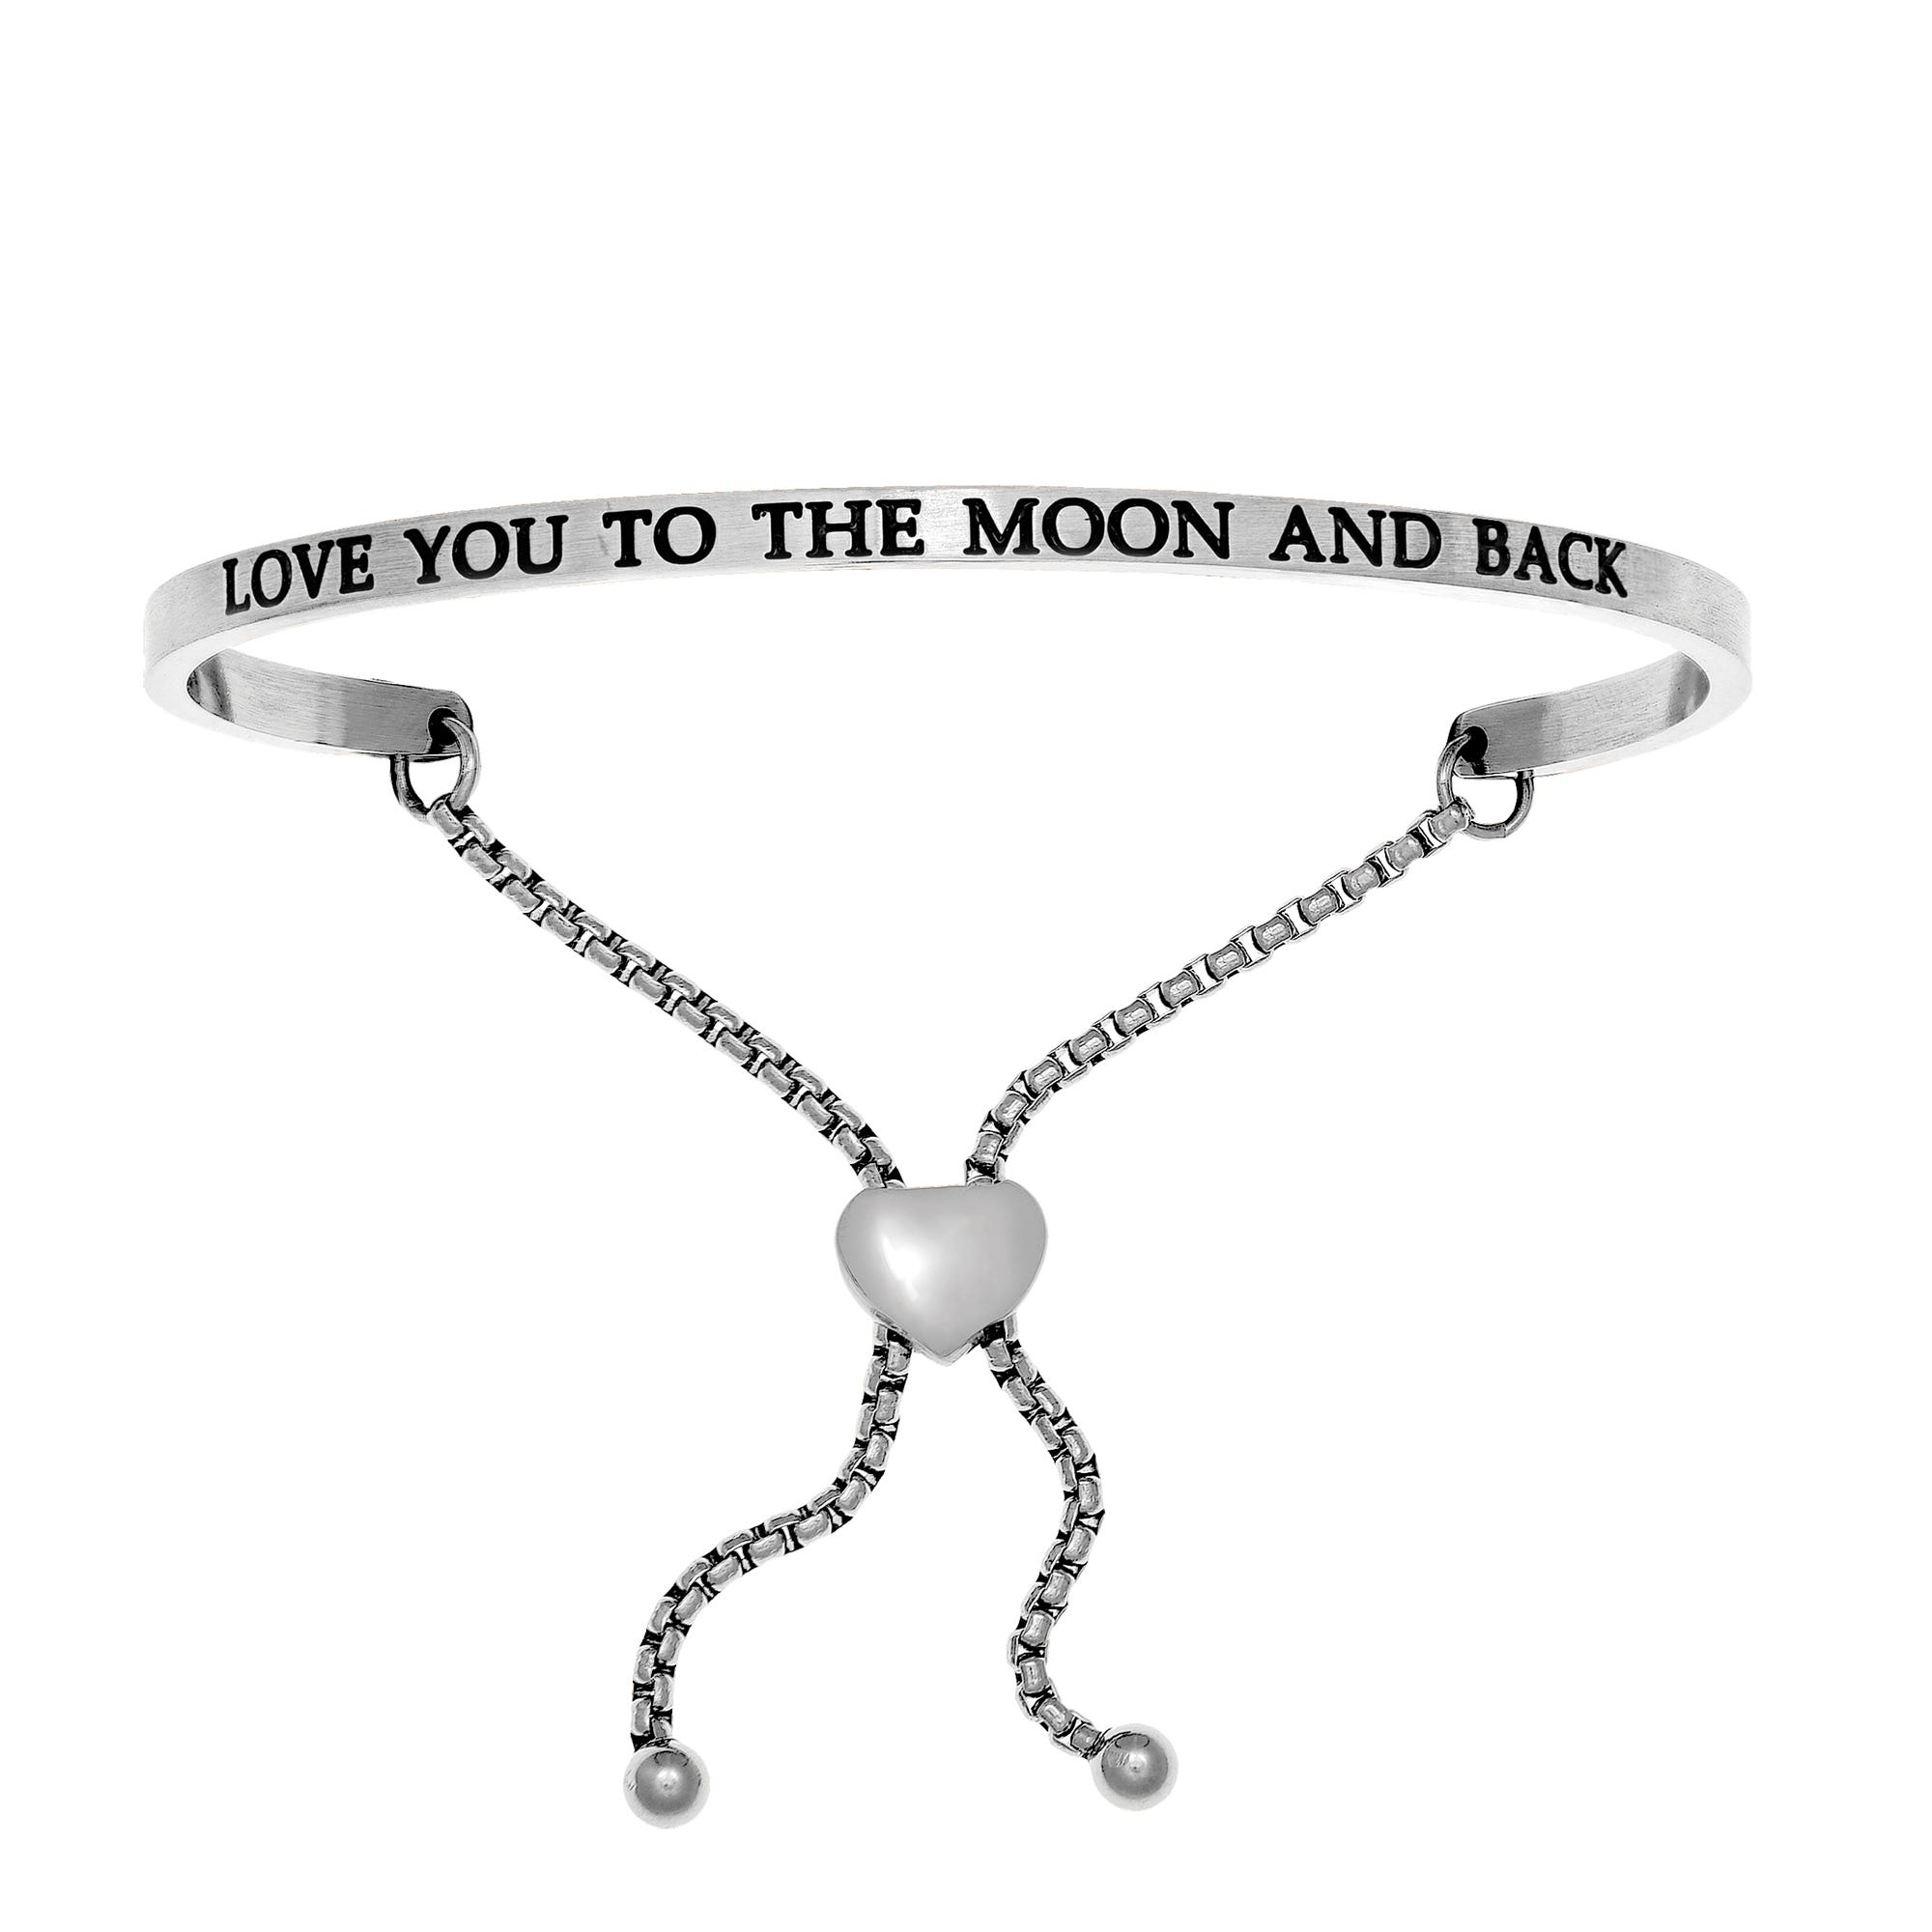 Love You To The Moon & Back. Intuitions Bolo Bracelet in White Stainless Steel